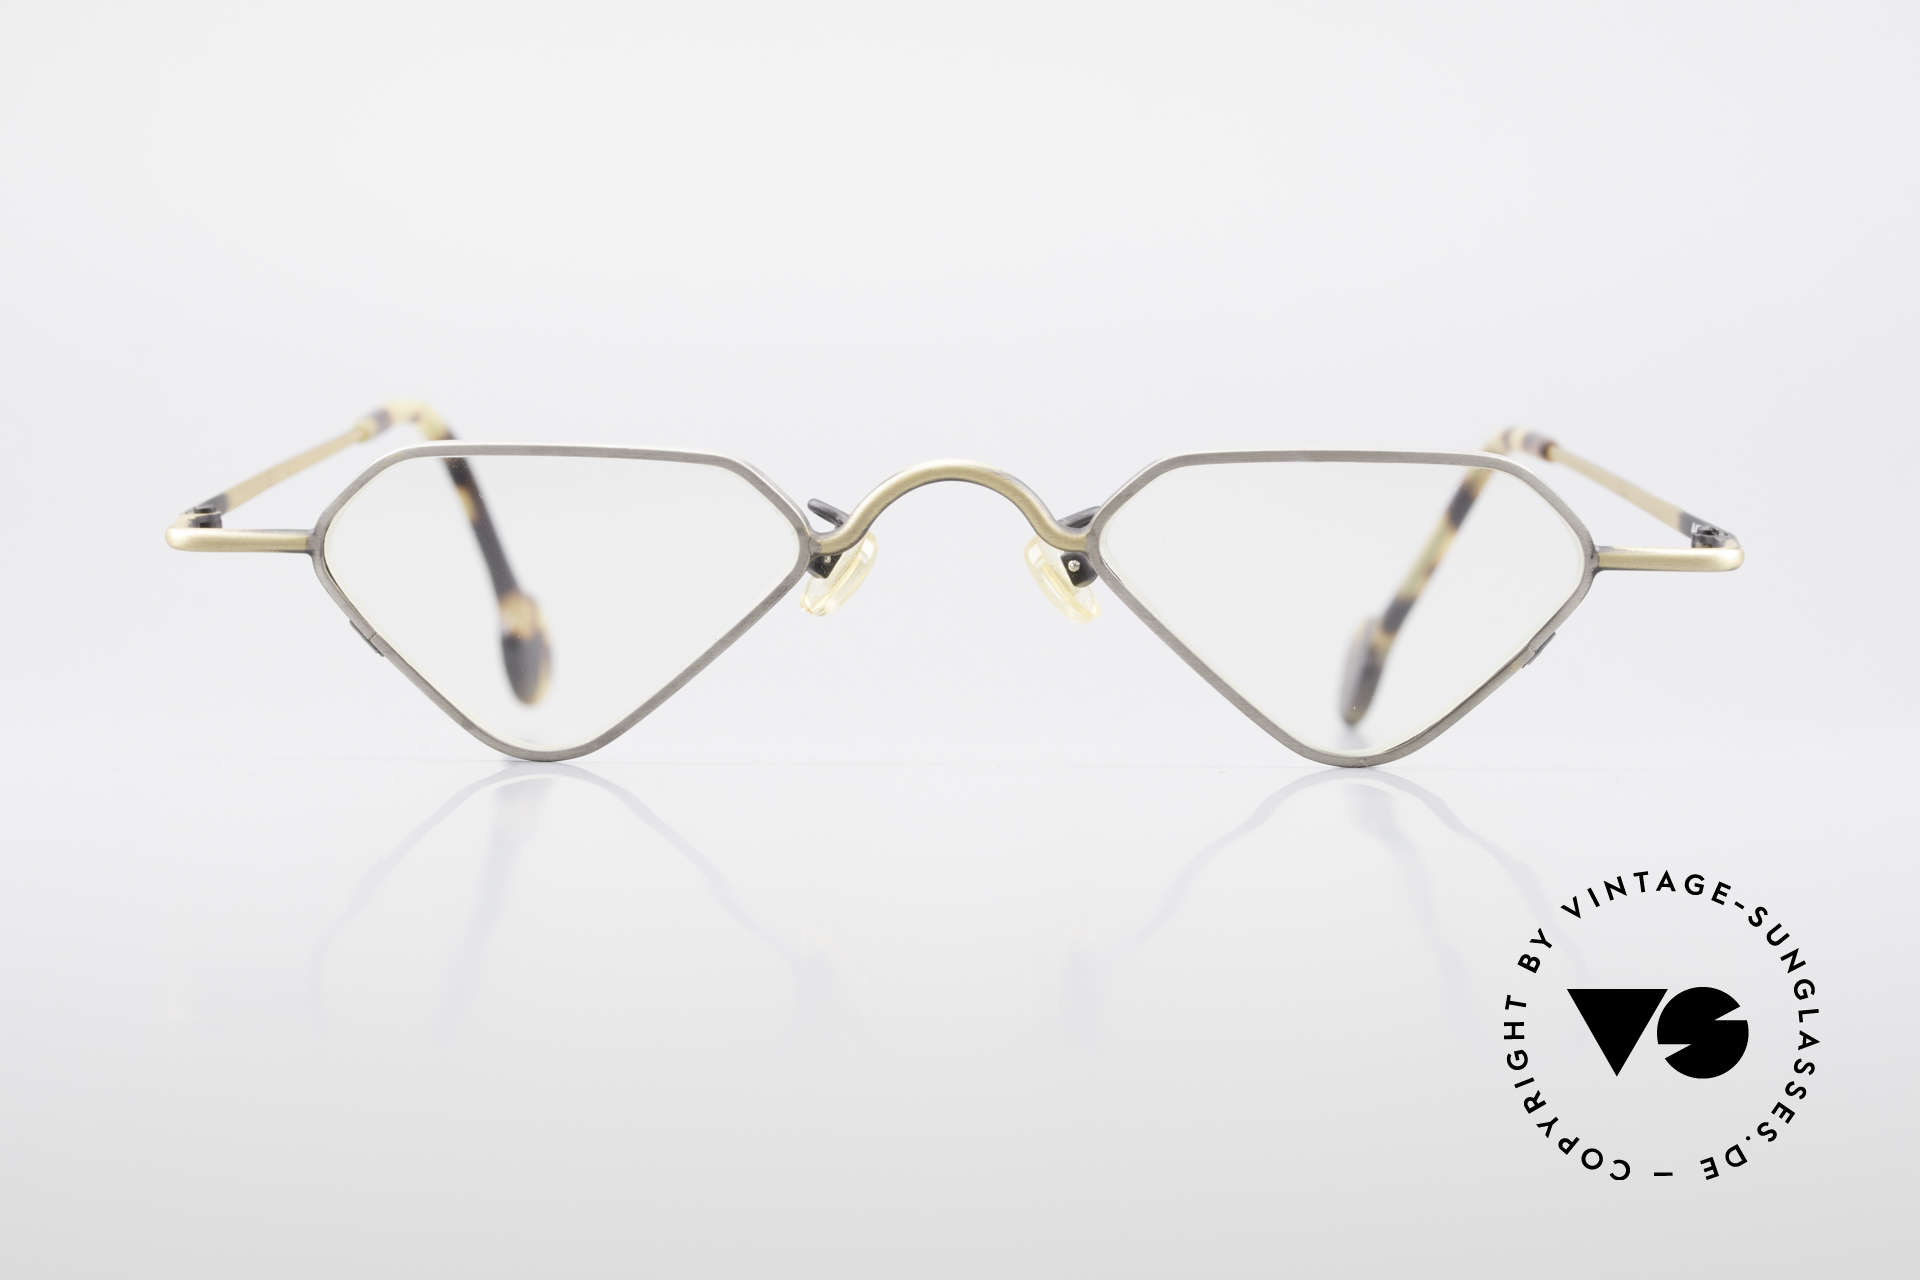 L.A. Eyeworks Millie 403 Extraordinary Reading Glasses, frame is shaped like a diamond (a true EYE-CATCHER), Made for Men and Women